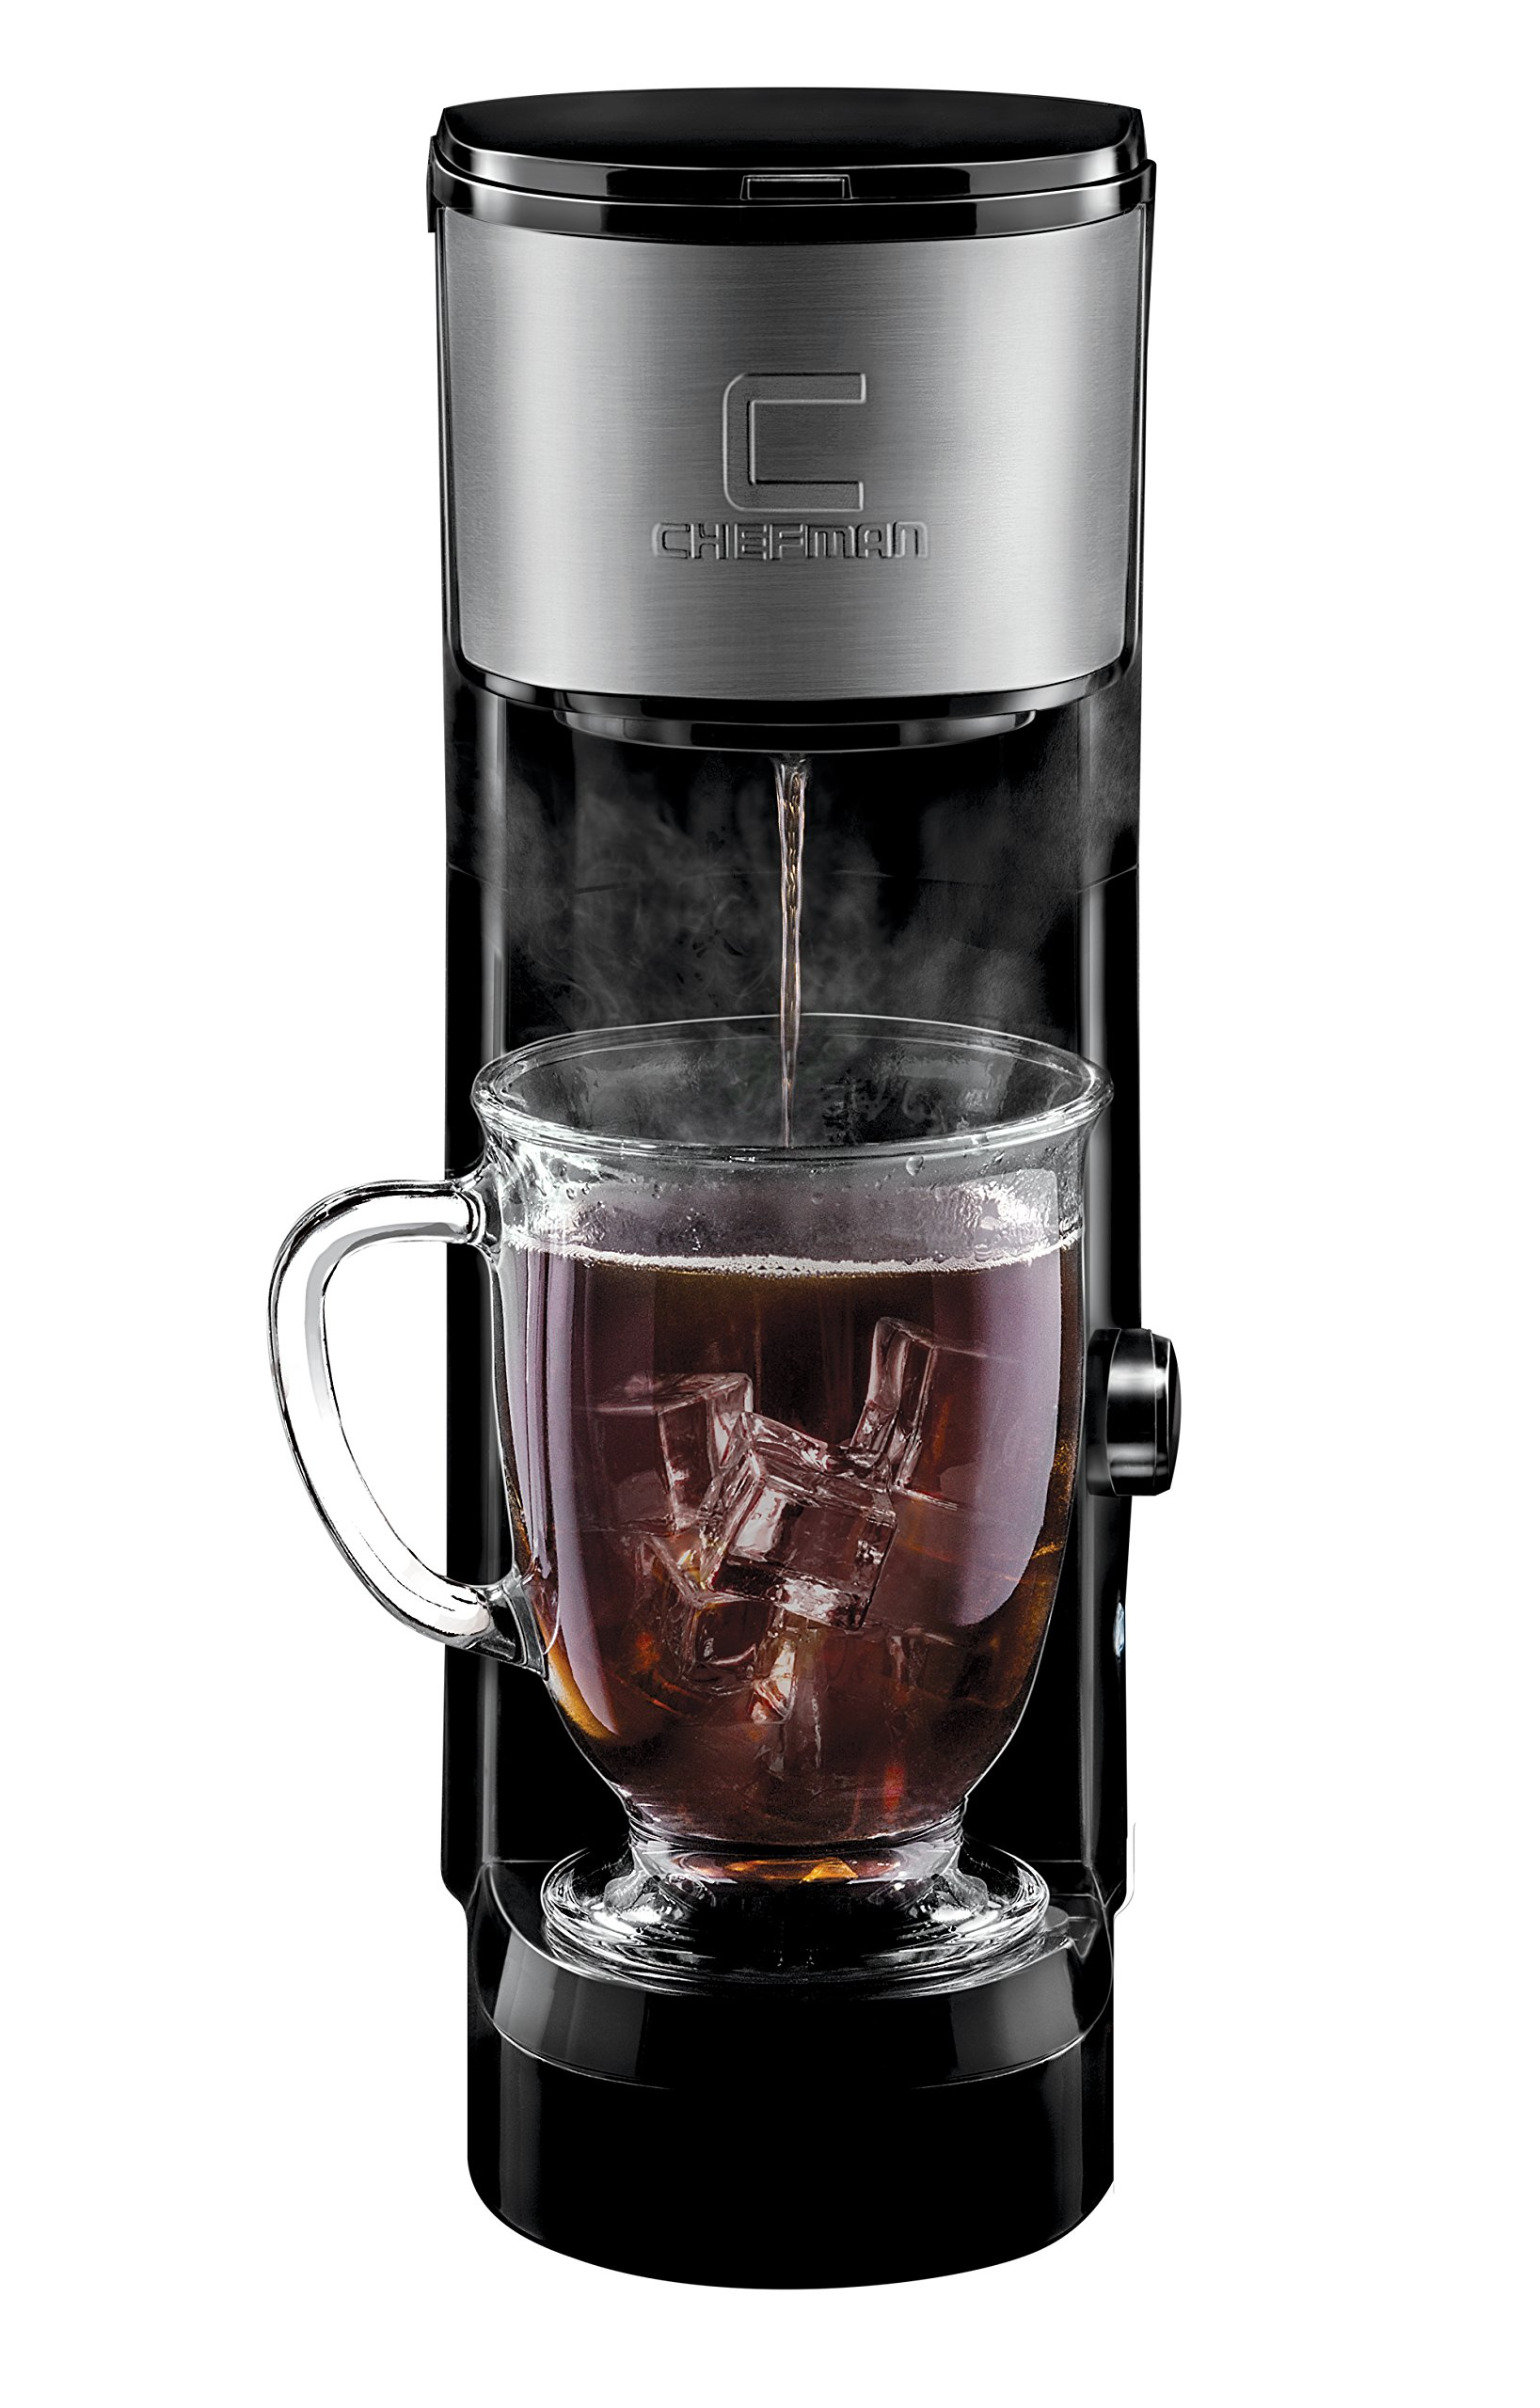 Chefman Coffee Maker K-Cup InstaBrew Brewer - Free Filter Included For Use With Coffee Grounds - Instant Reboil - Single Serve-Mug NOT Included